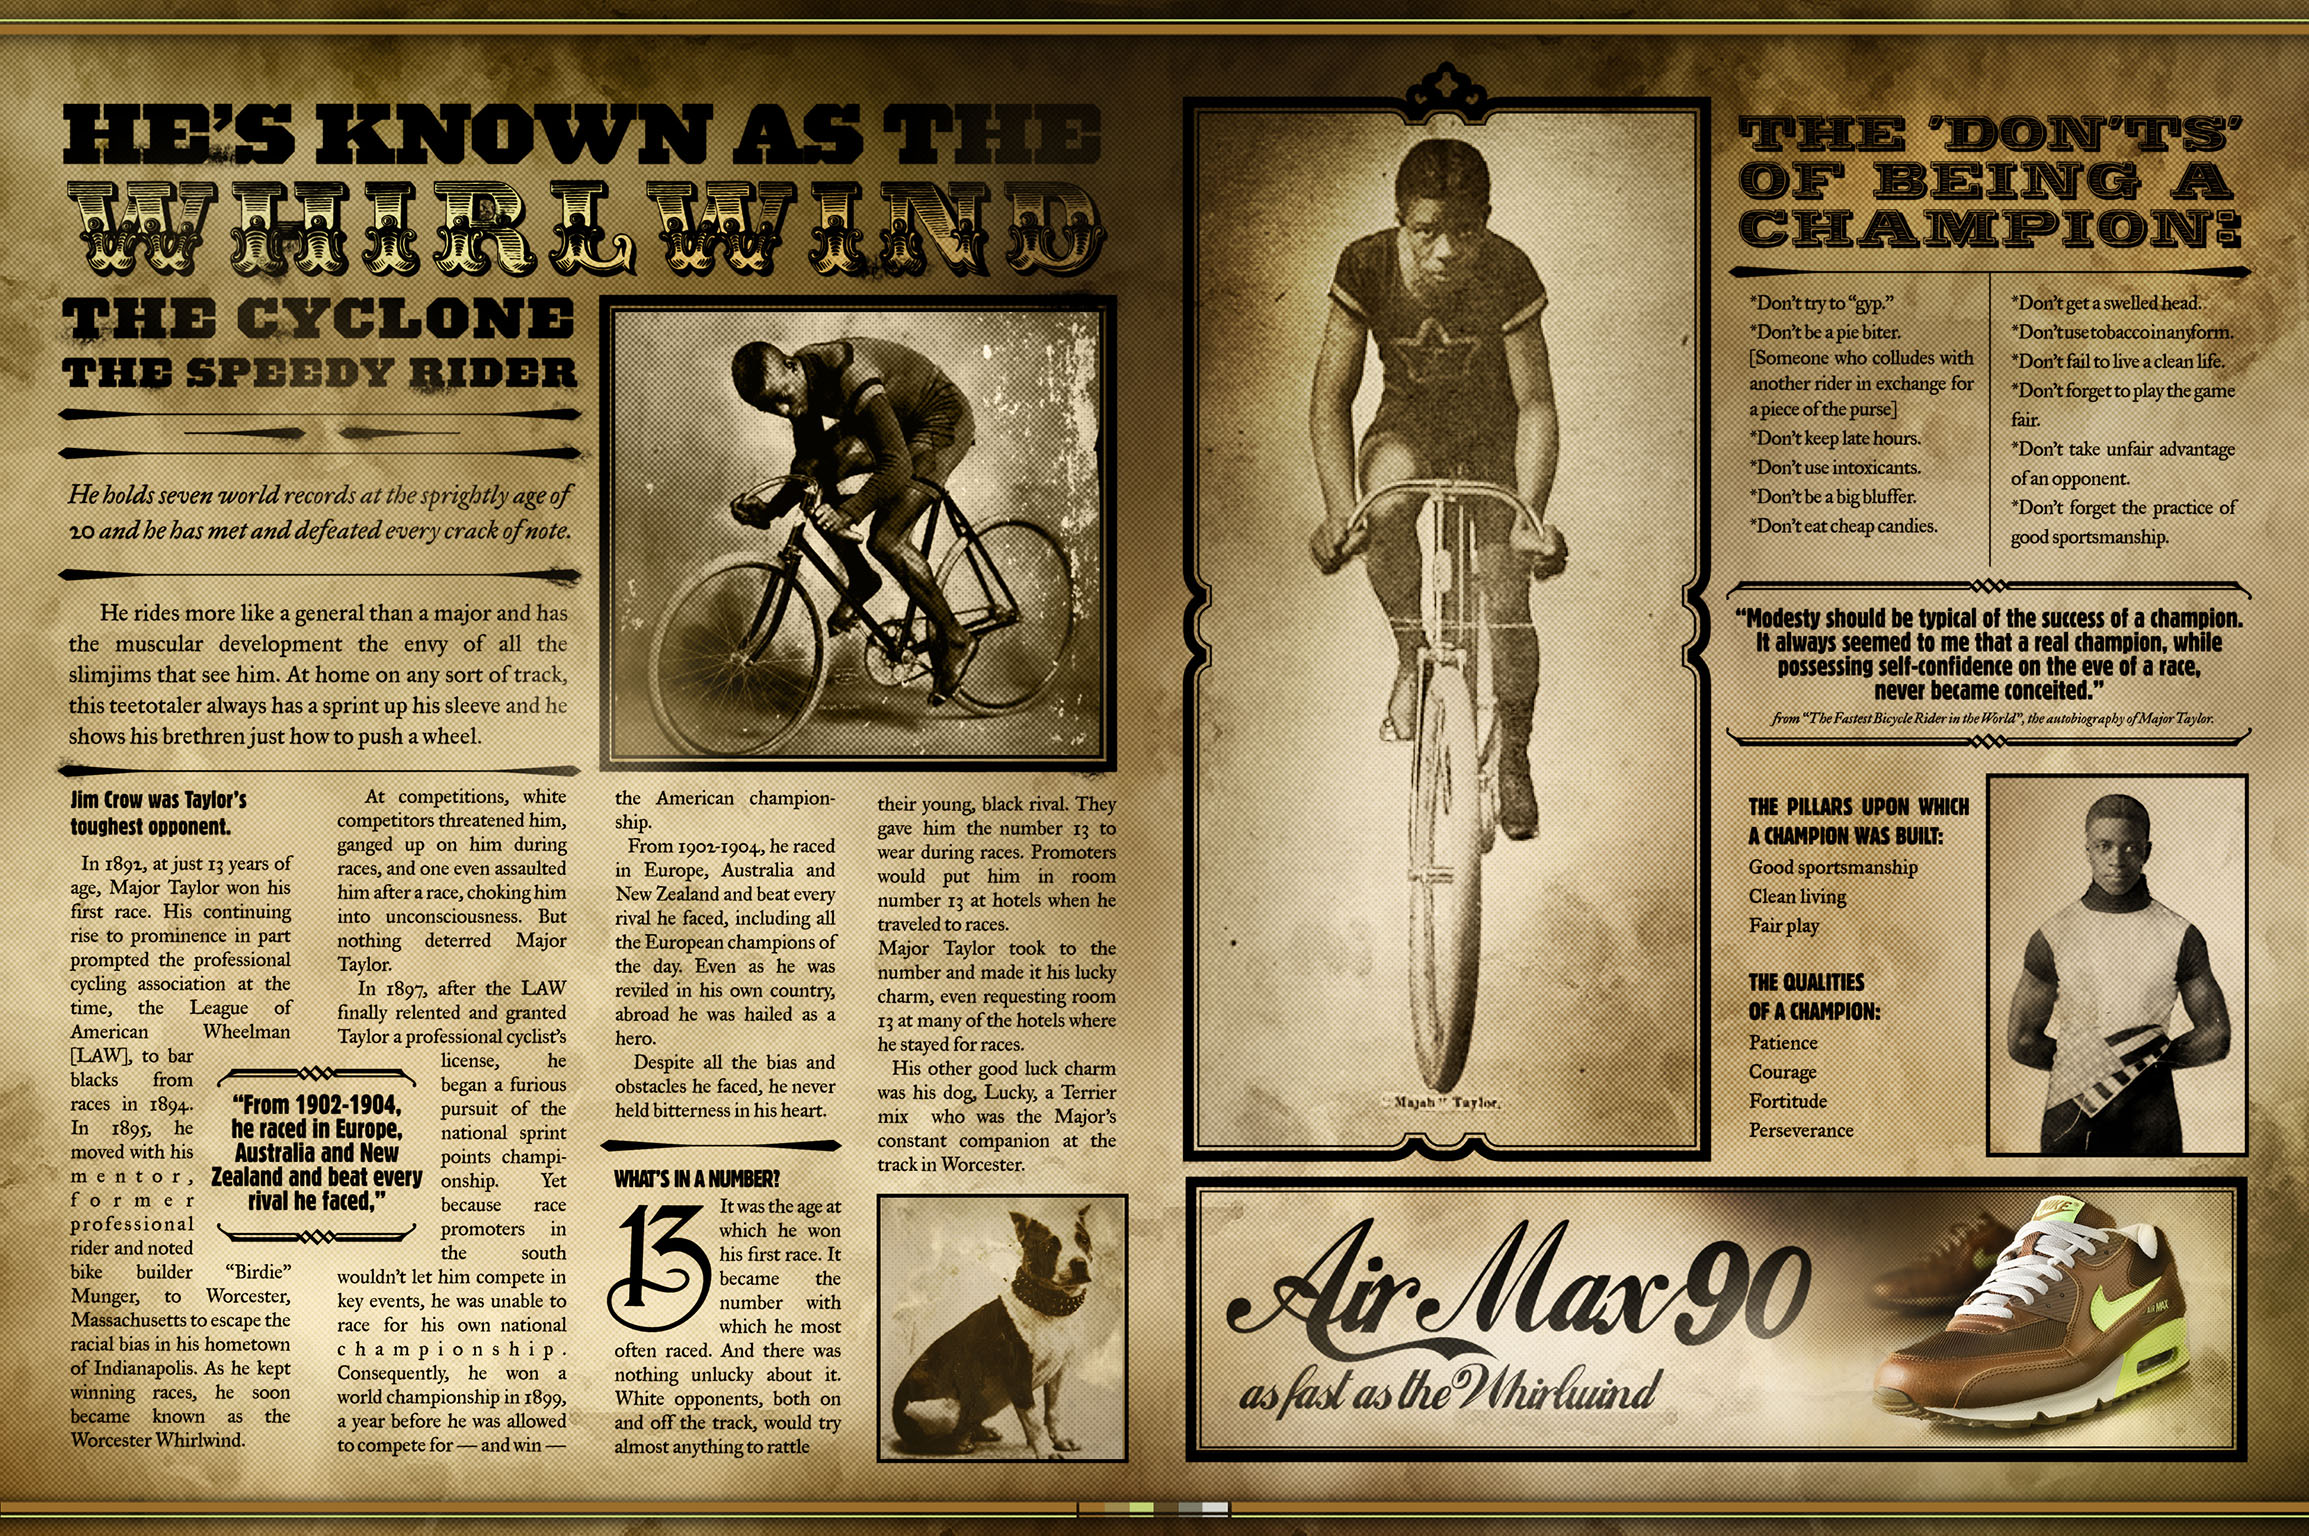 Vintage news print ad mockup for nike with person on bicycle